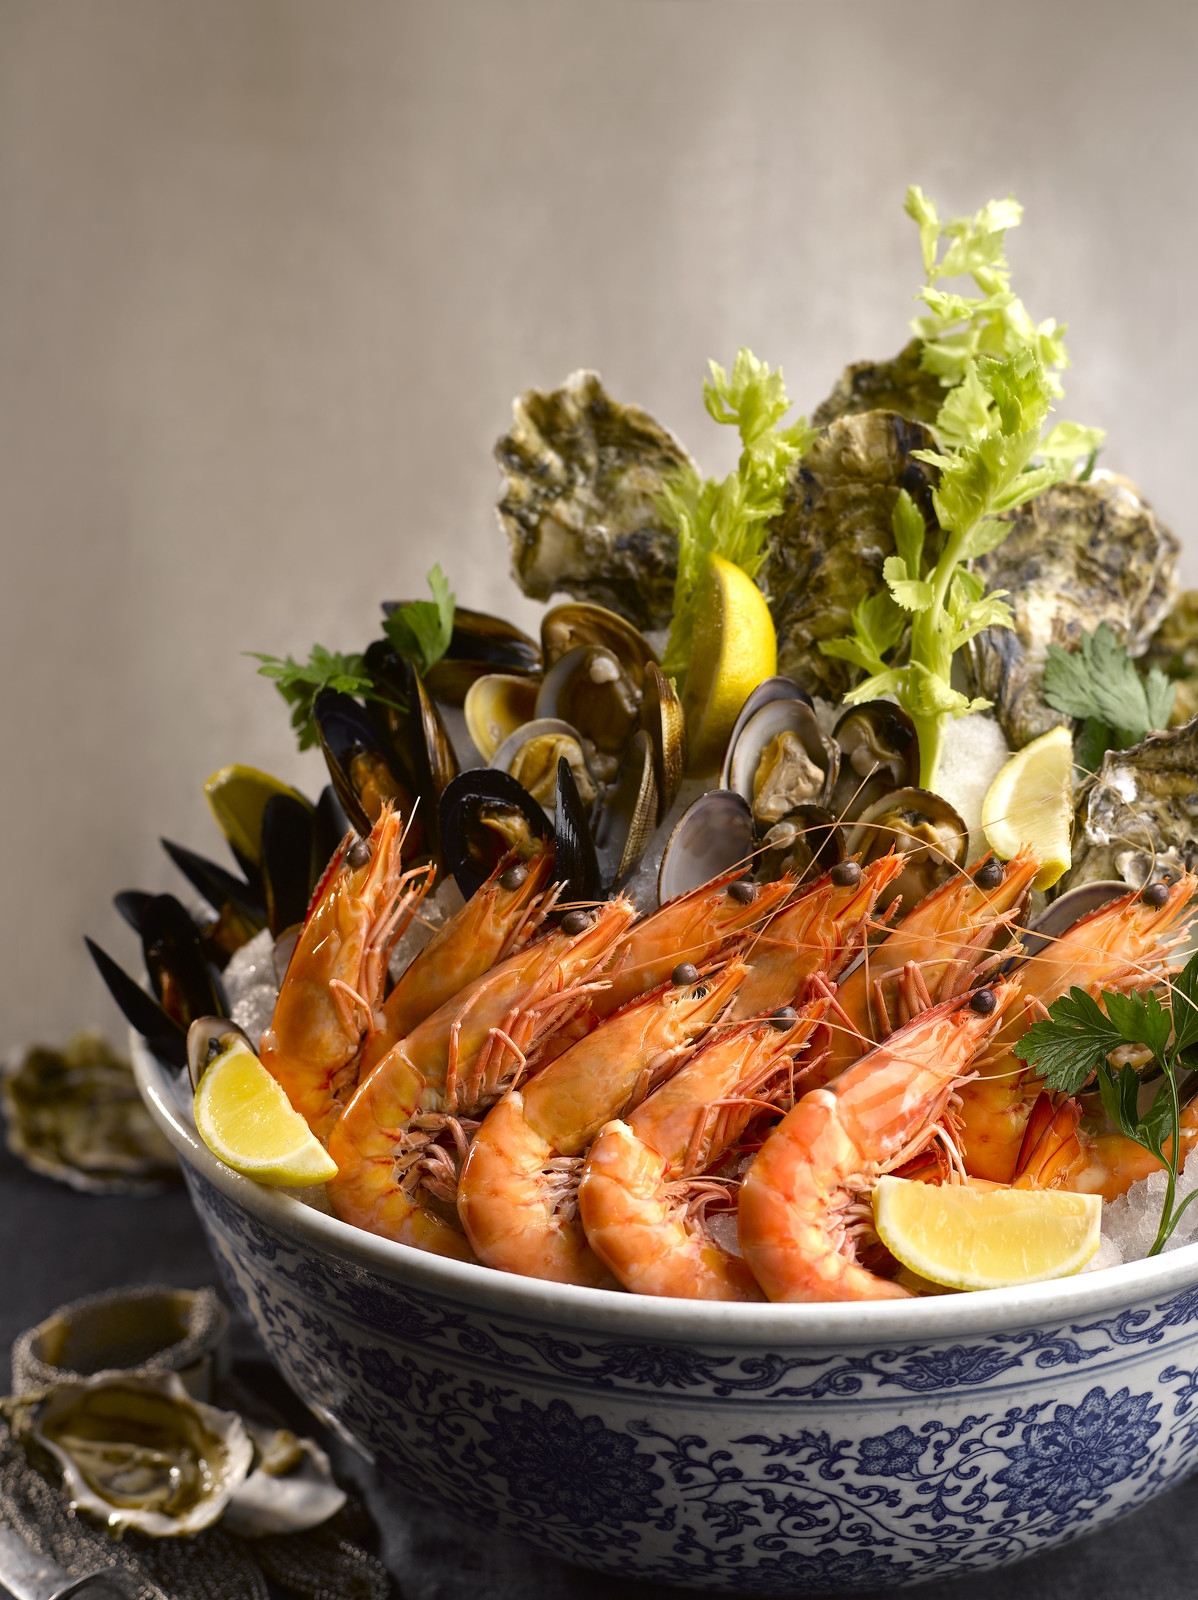 StraitsKitchen Sustainable Poached Tiger Prawns, Clams and Oysters